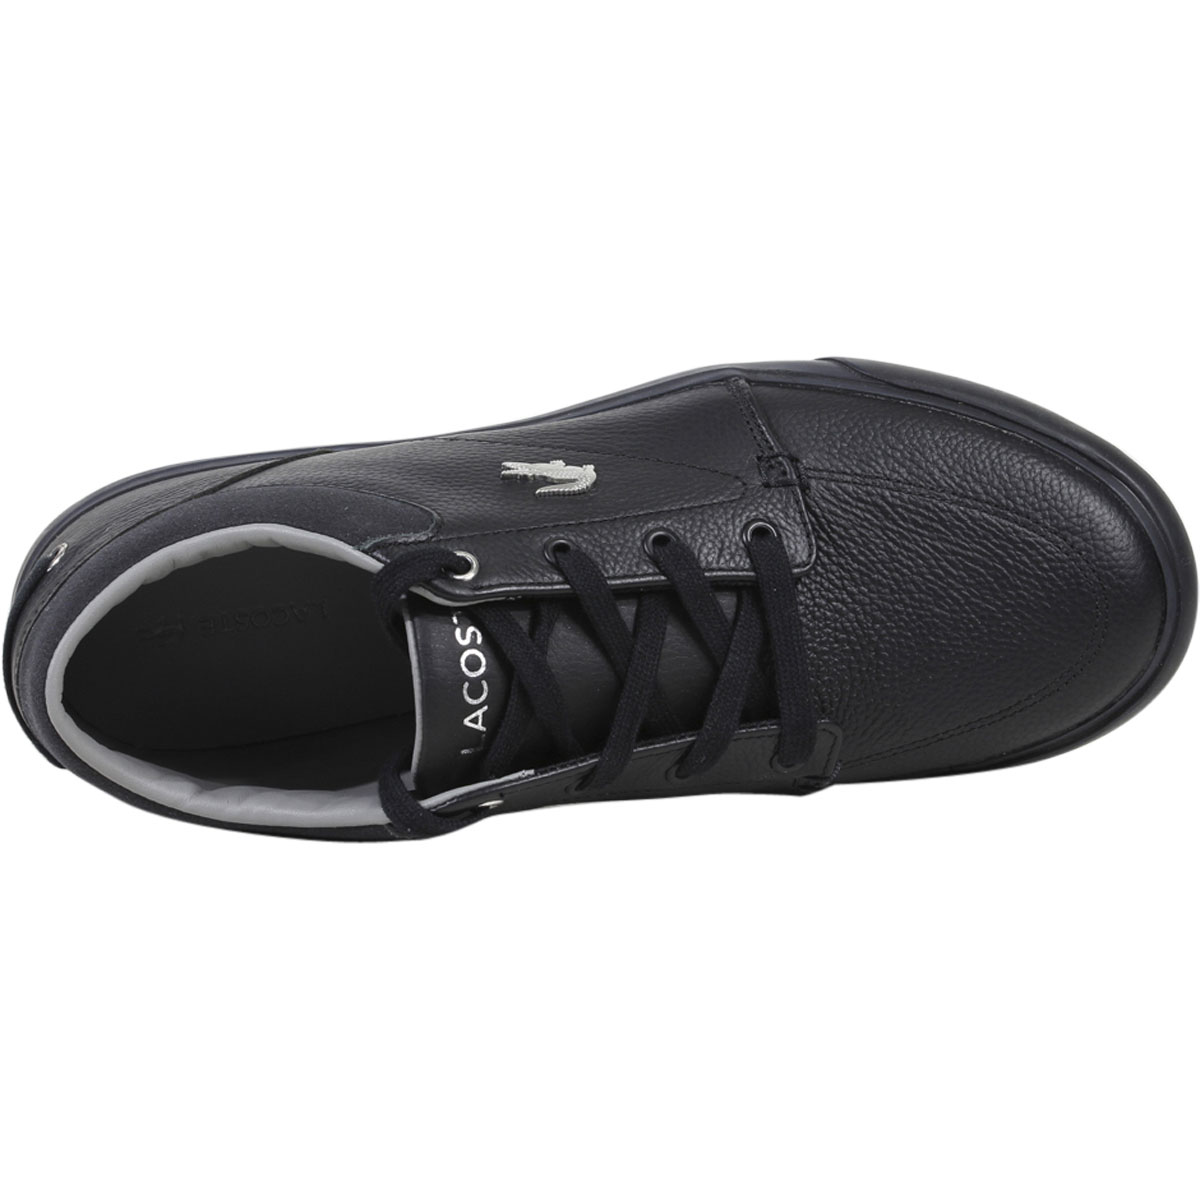 Lacoste-Men-039-s-Bayliss-118-Sneakers-Shoes thumbnail 14